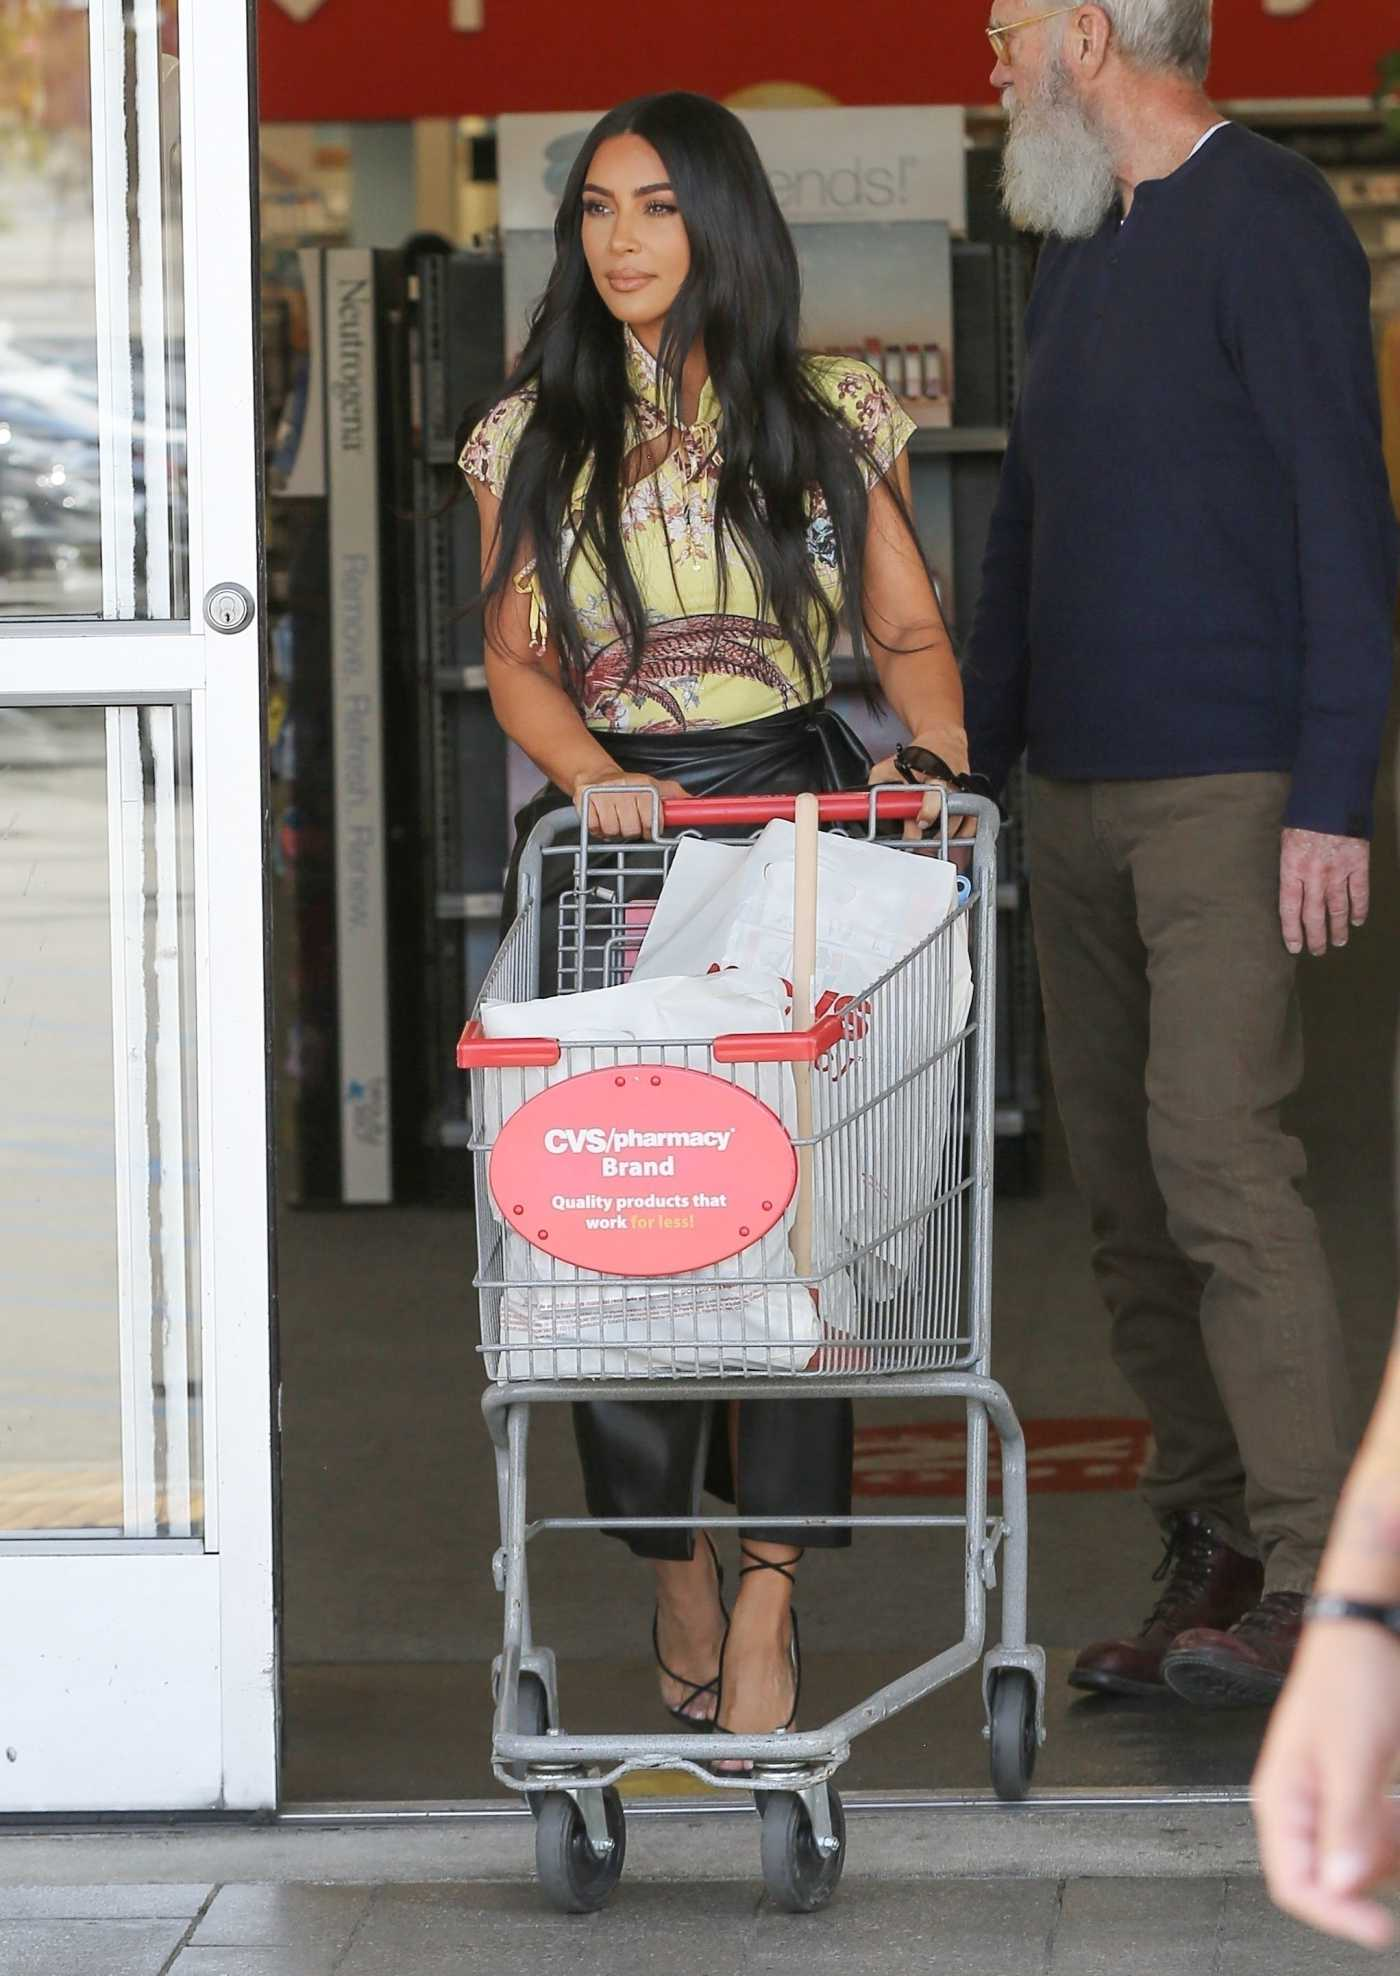 Kim Kardashian in a Black Skirt Hits up CVS with David Letterman with a Film Crew in Calabasas 03/05/2020